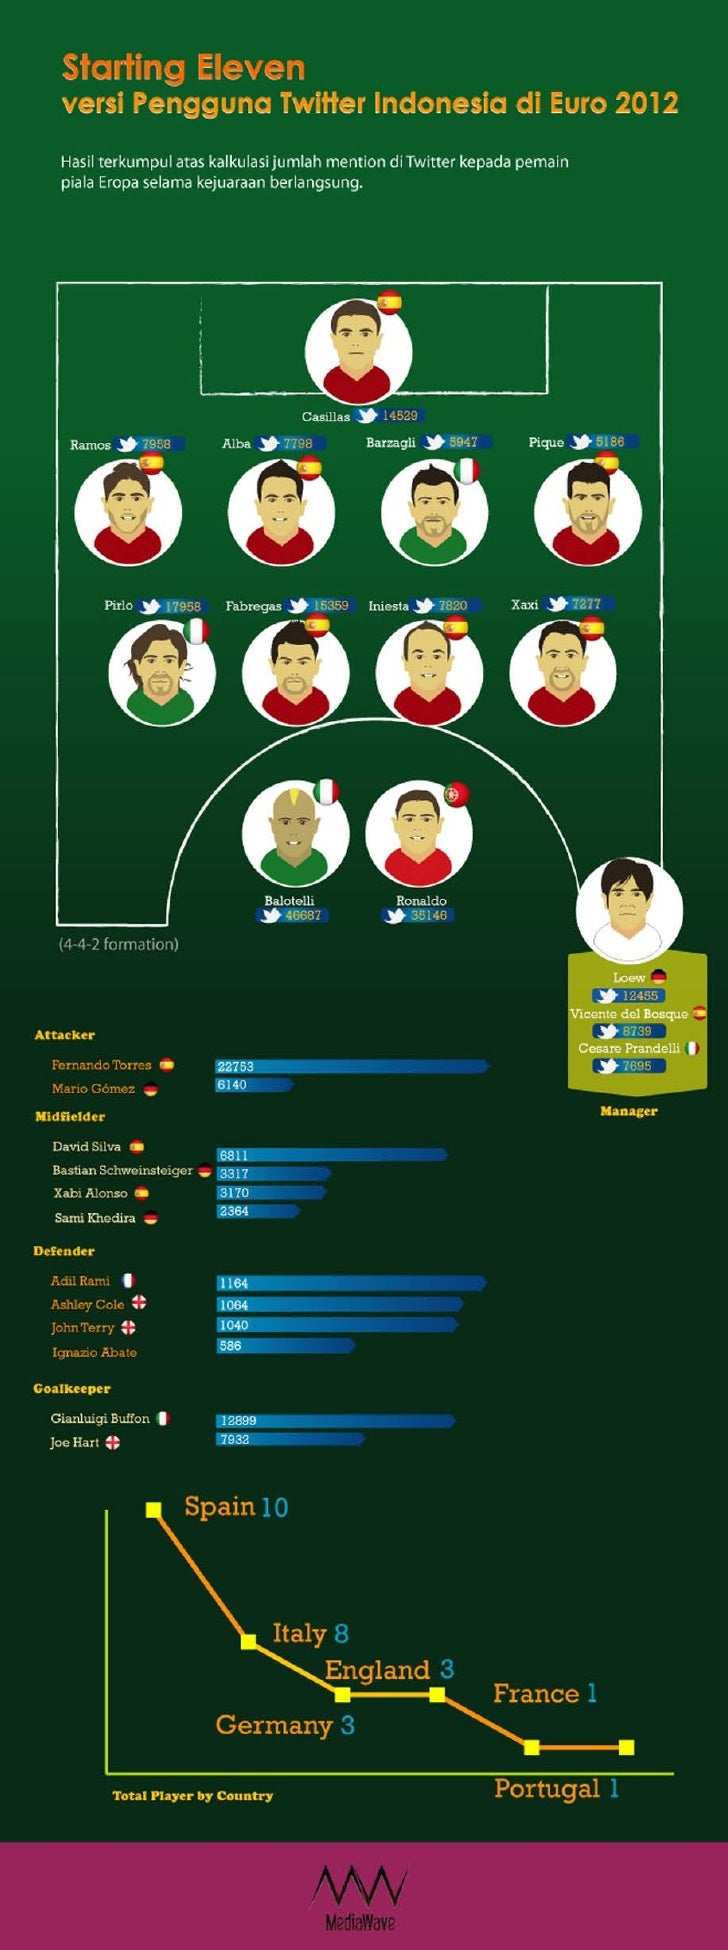 Euro-2012 Starting Eleven based on Indonesia Social Media